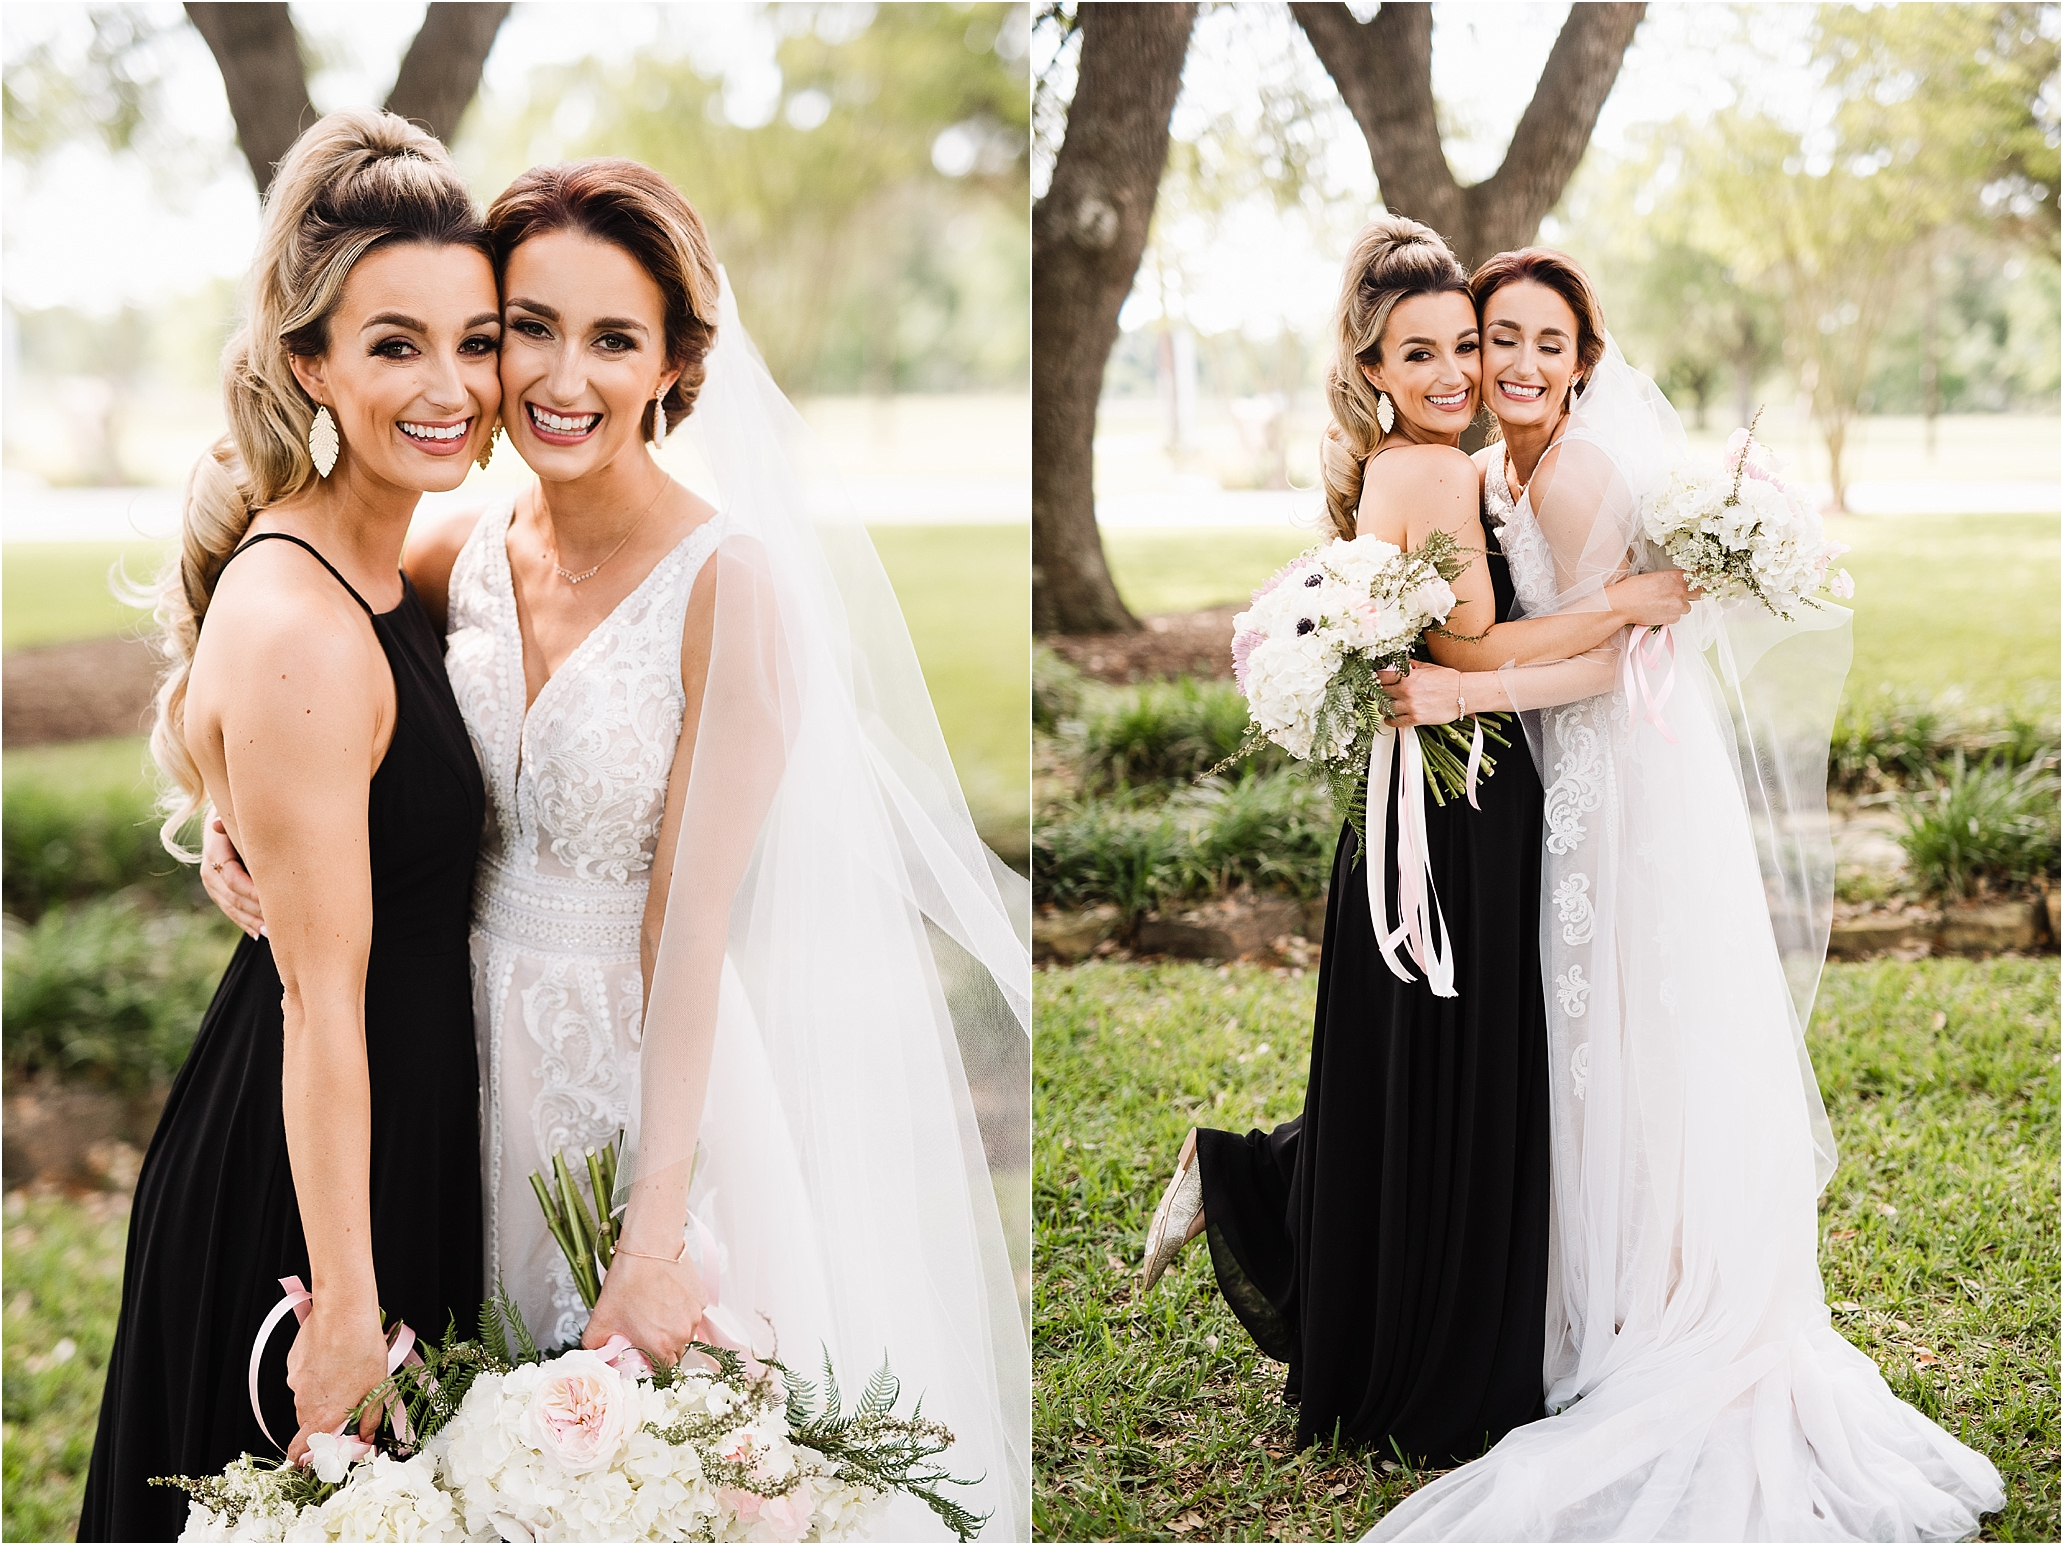 PattisonHouse_TexasWeddingPhotographer_CarlyCrockett&MattBrownWedding_0085.jpg